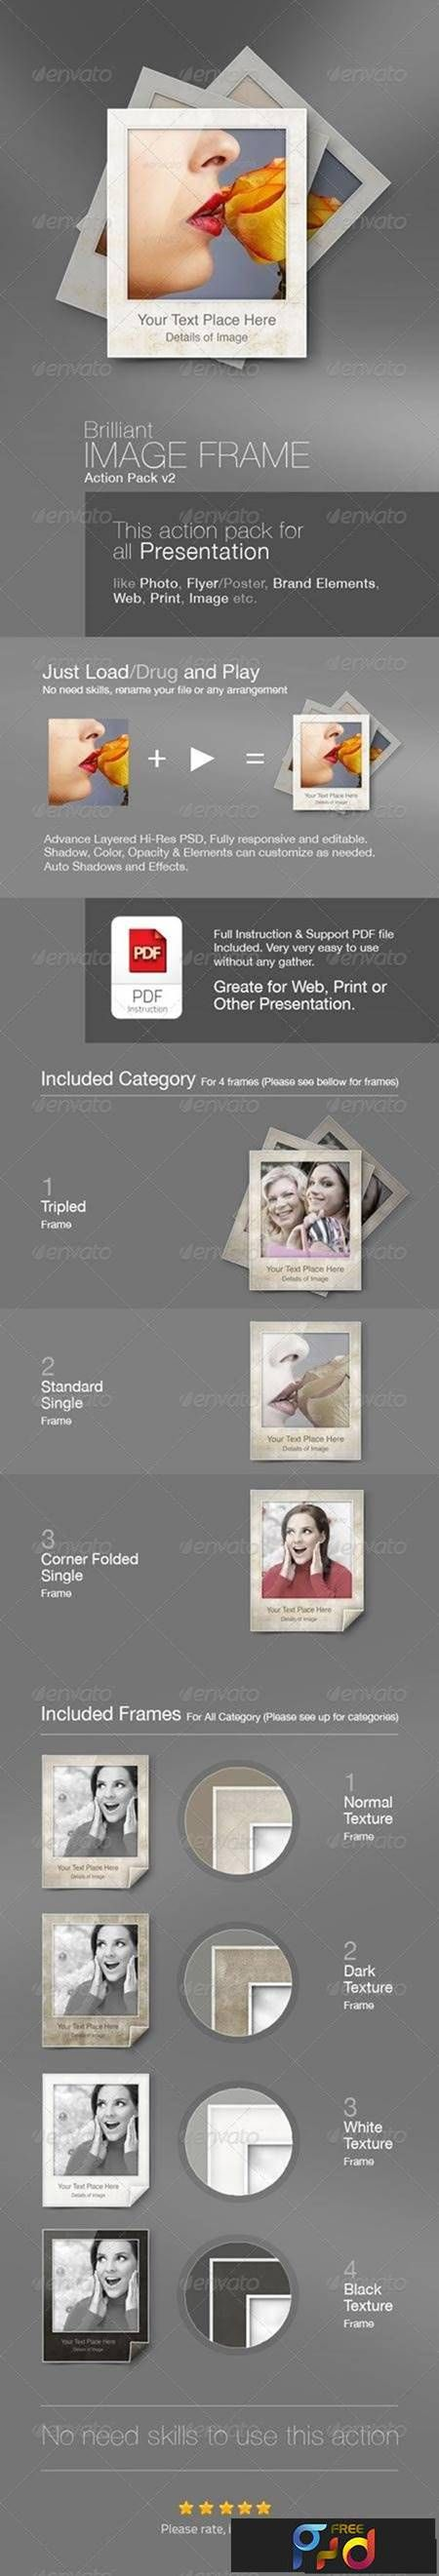 The 128 best Free PSD - Free Photoshop Action images on Pinterest ...